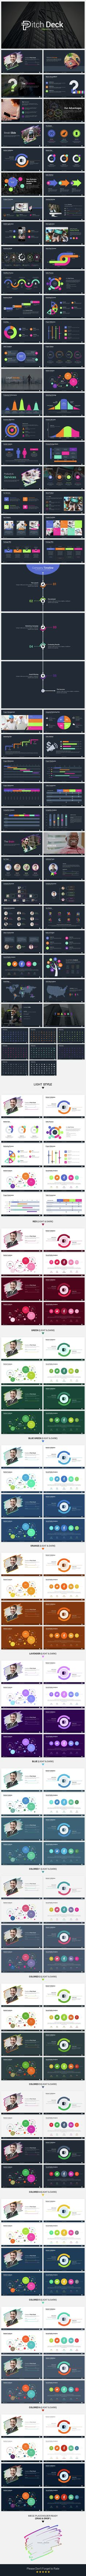 Creative Pitch Deck PowerPoint Template. Download here: http://graphicriver.net/item/creative-pitch-deck-powerpoint-template/14757455?ref=ksioks